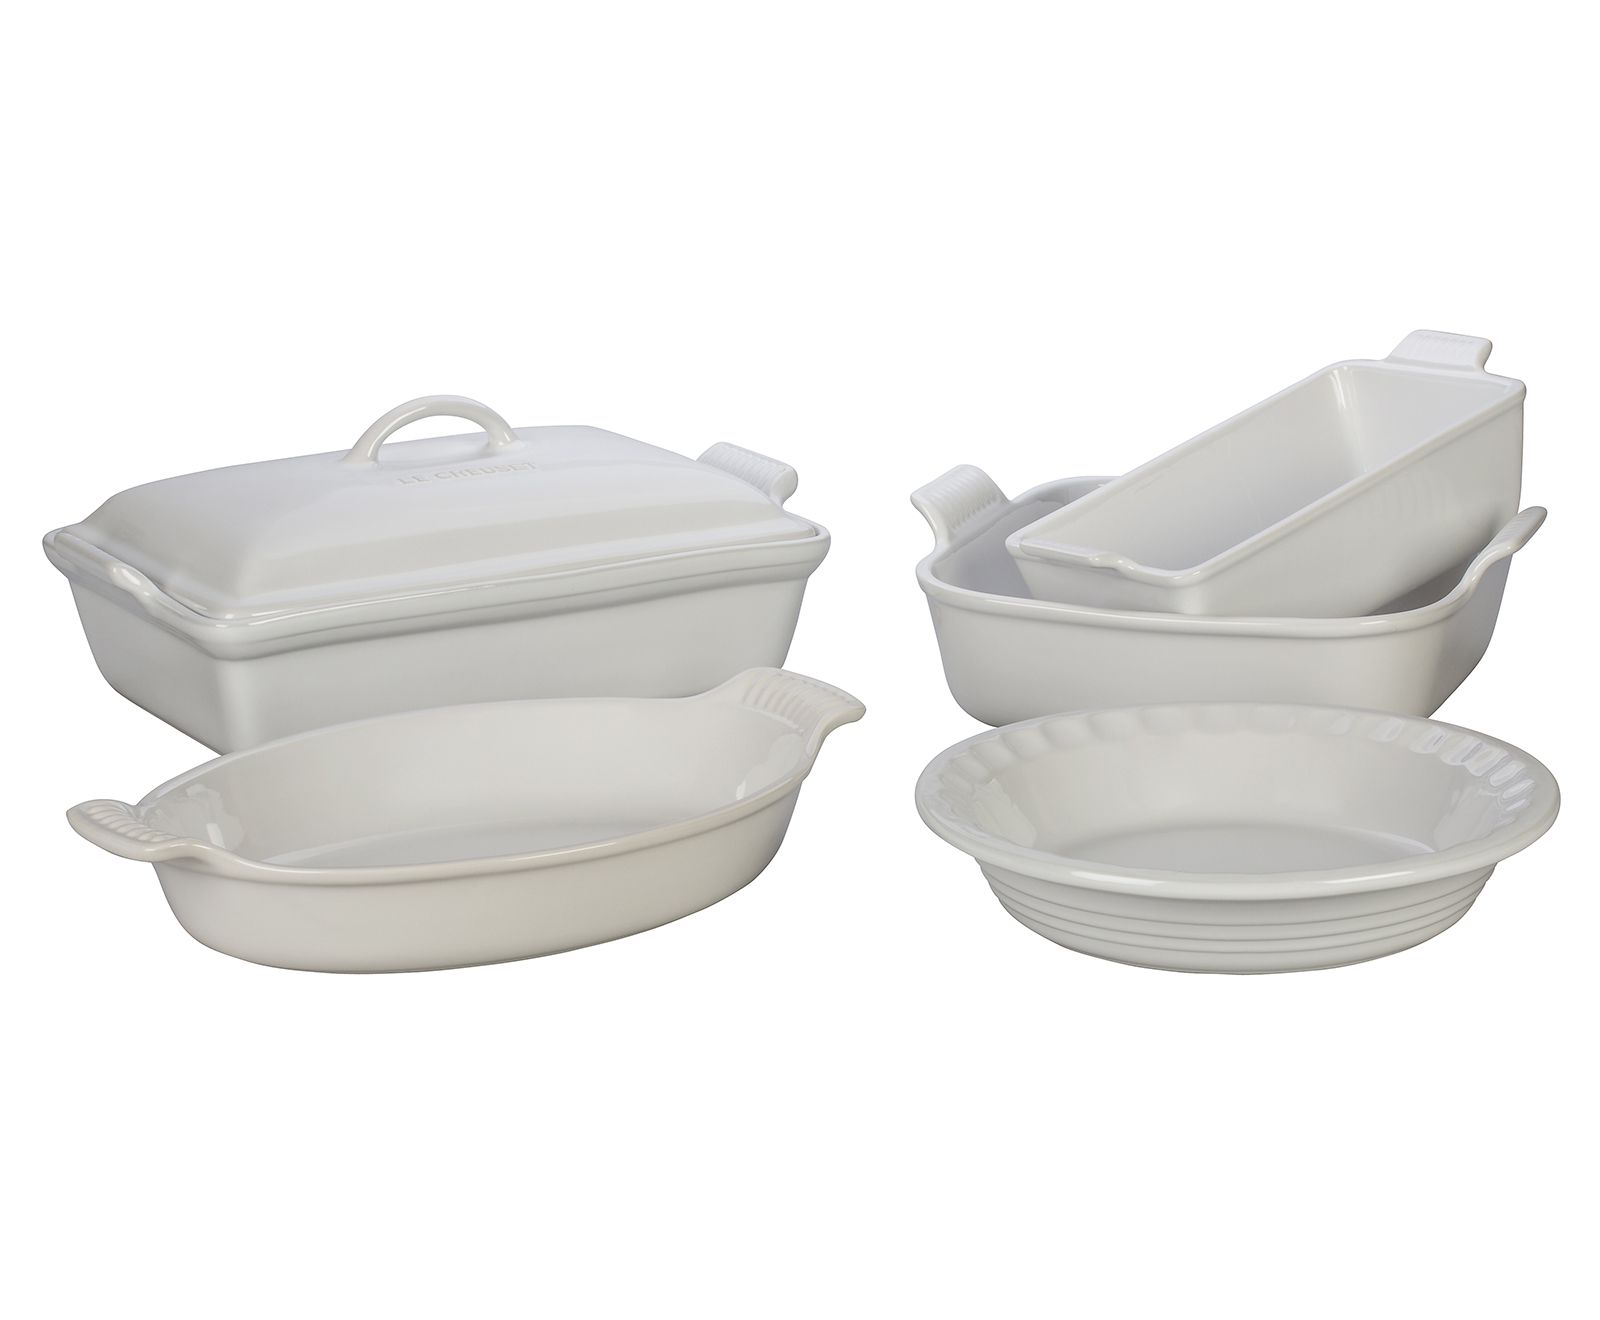 Le Creuset 5 Piece Heritage Bakeware Set White In 2020